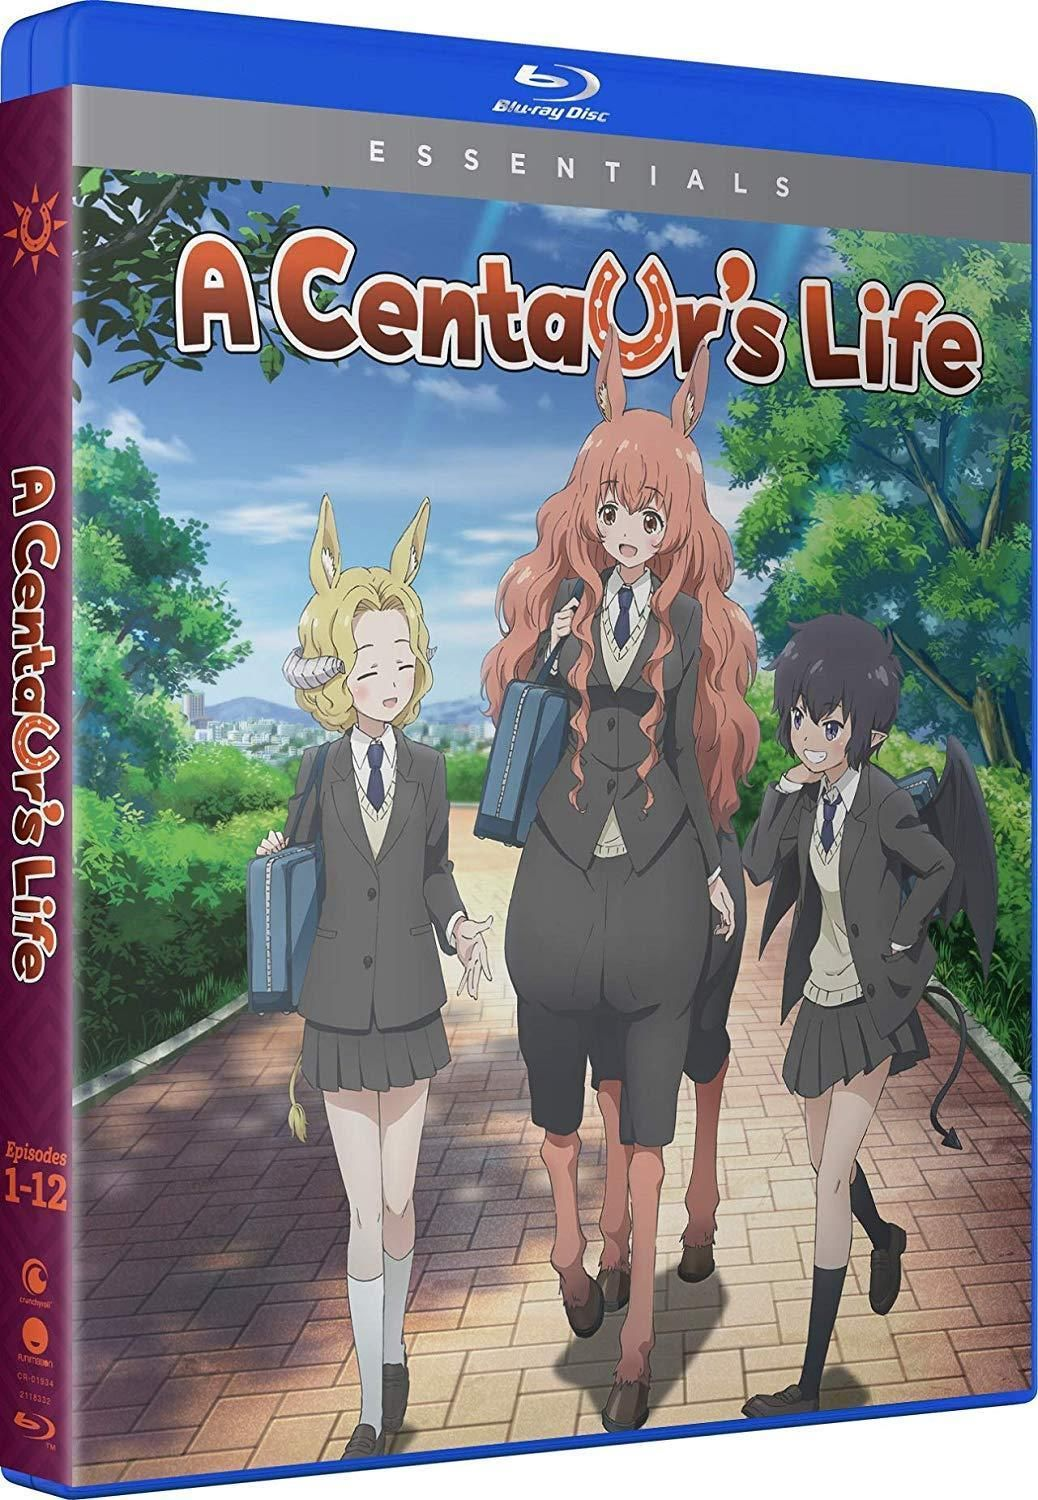 A Centaur's Life - The Complete Series Blu-ray #bluray